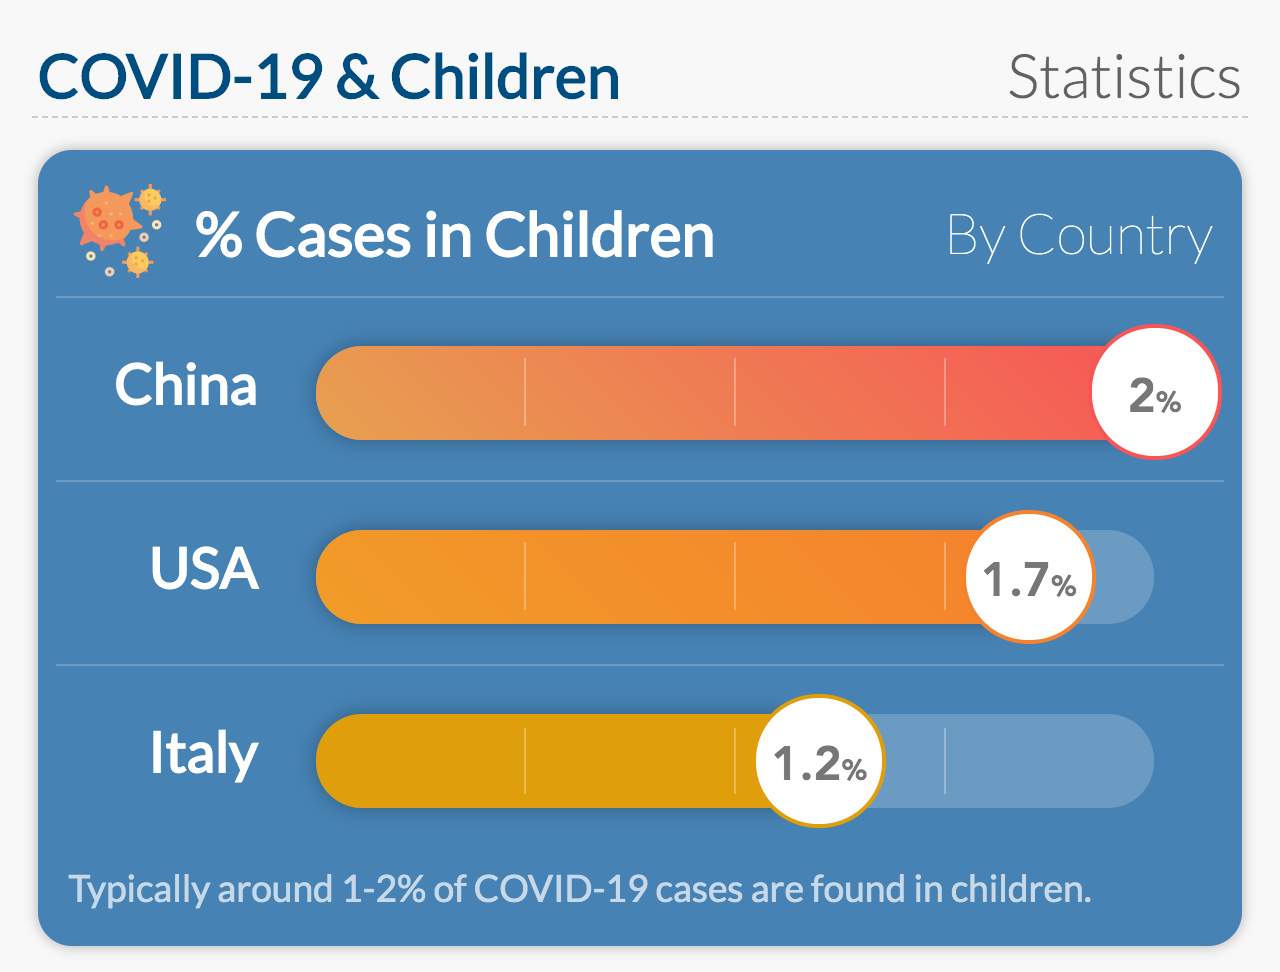 Typically around 1-2% of COVID-19 cases are found in children.